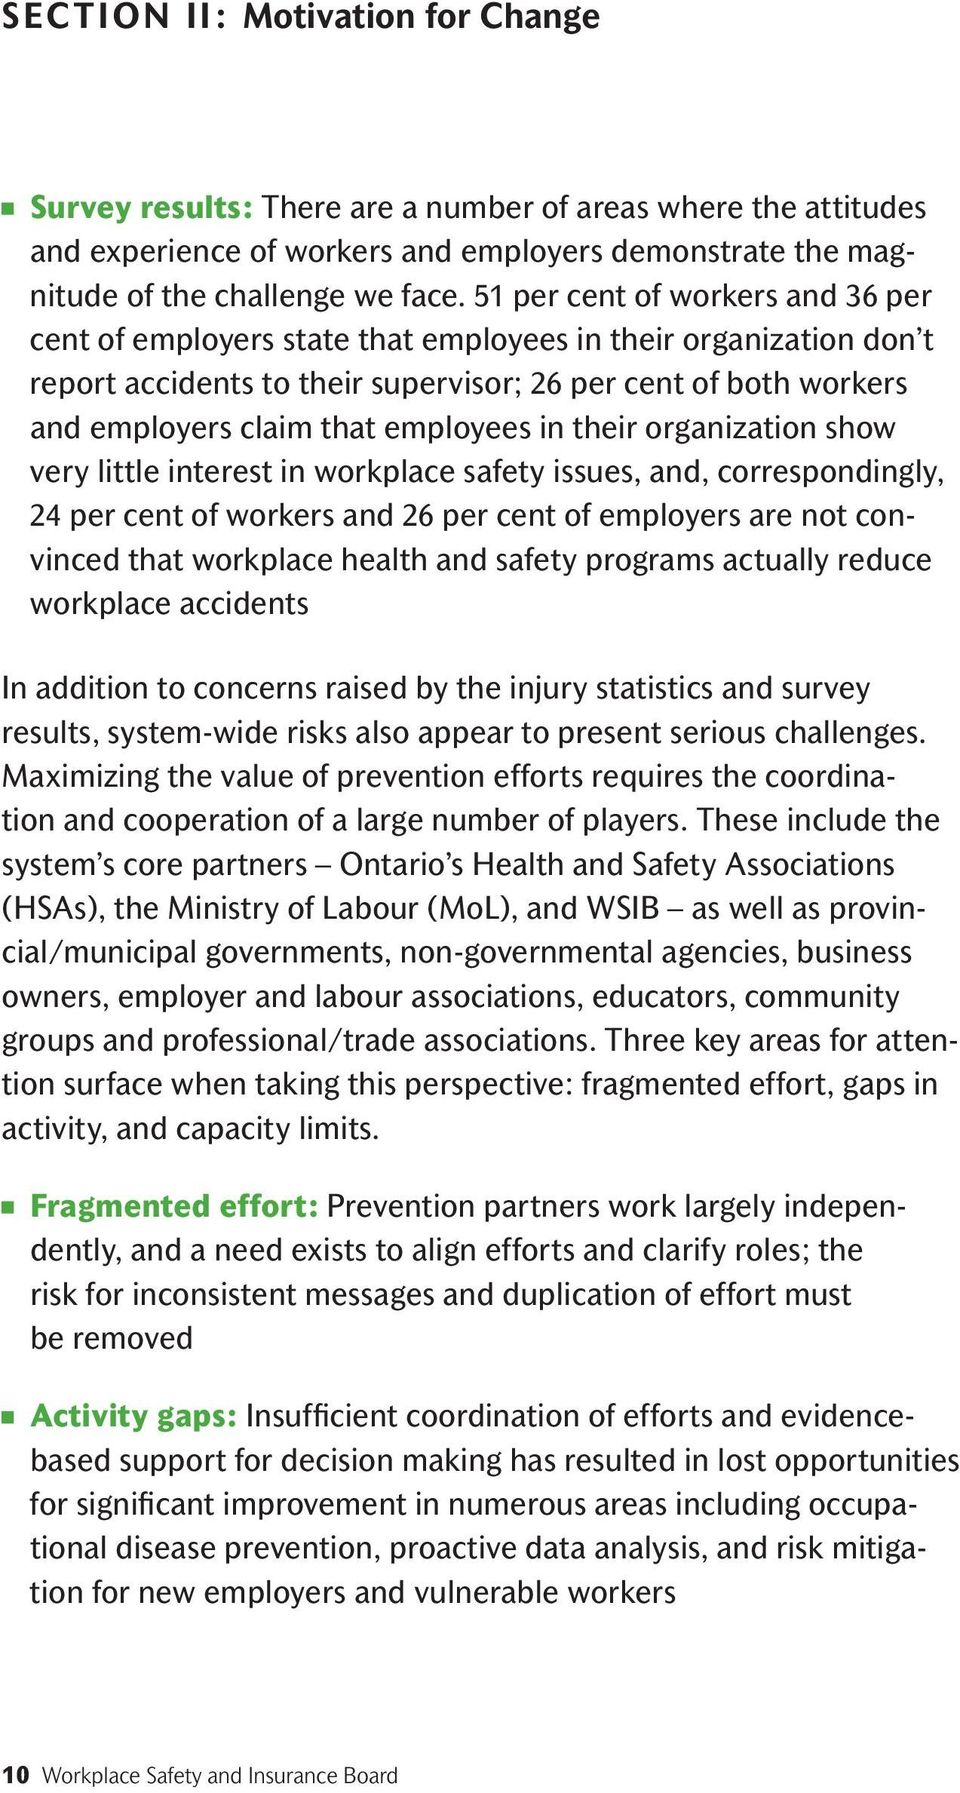 employees in their organization show very little interest in workplace safety issues, and, correspondingly, 24 per cent of workers and 26 per cent of employers are not convinced that workplace health